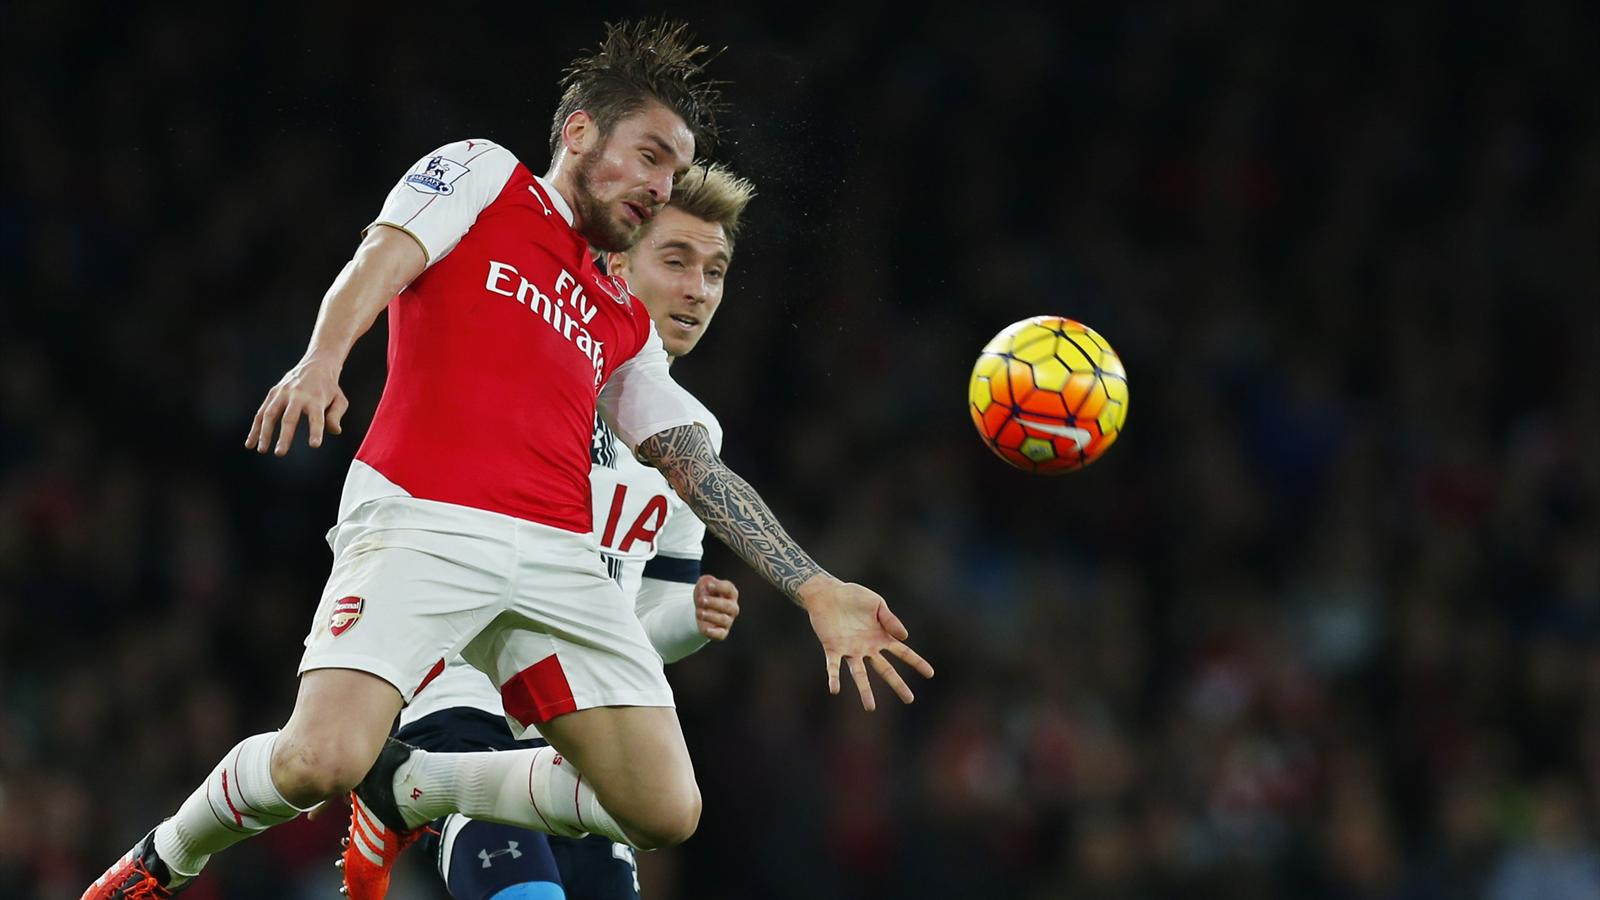 Arsenal s mathieu debuchy joins bordeaux on loan for rest - University league tables french ...